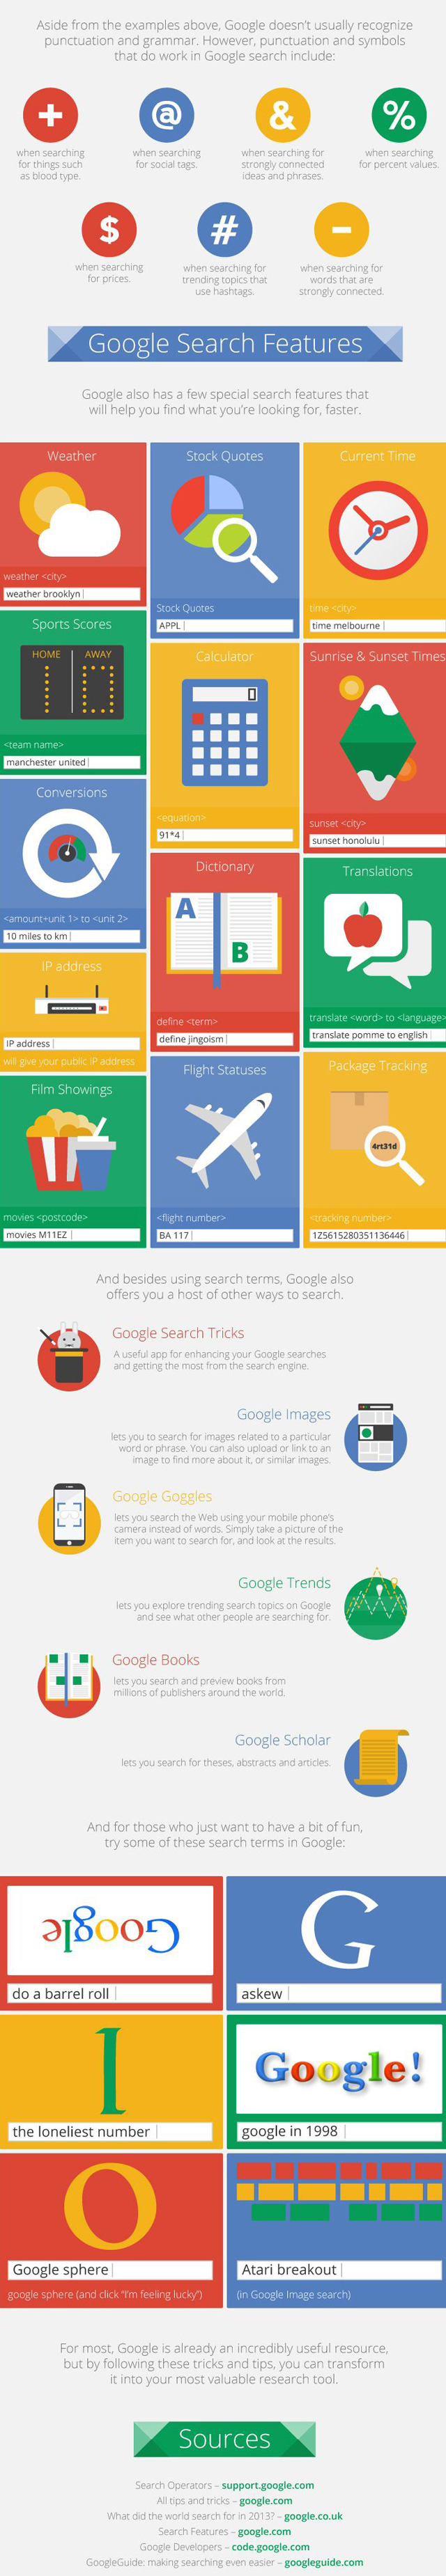 Awesome Google tips and tricks